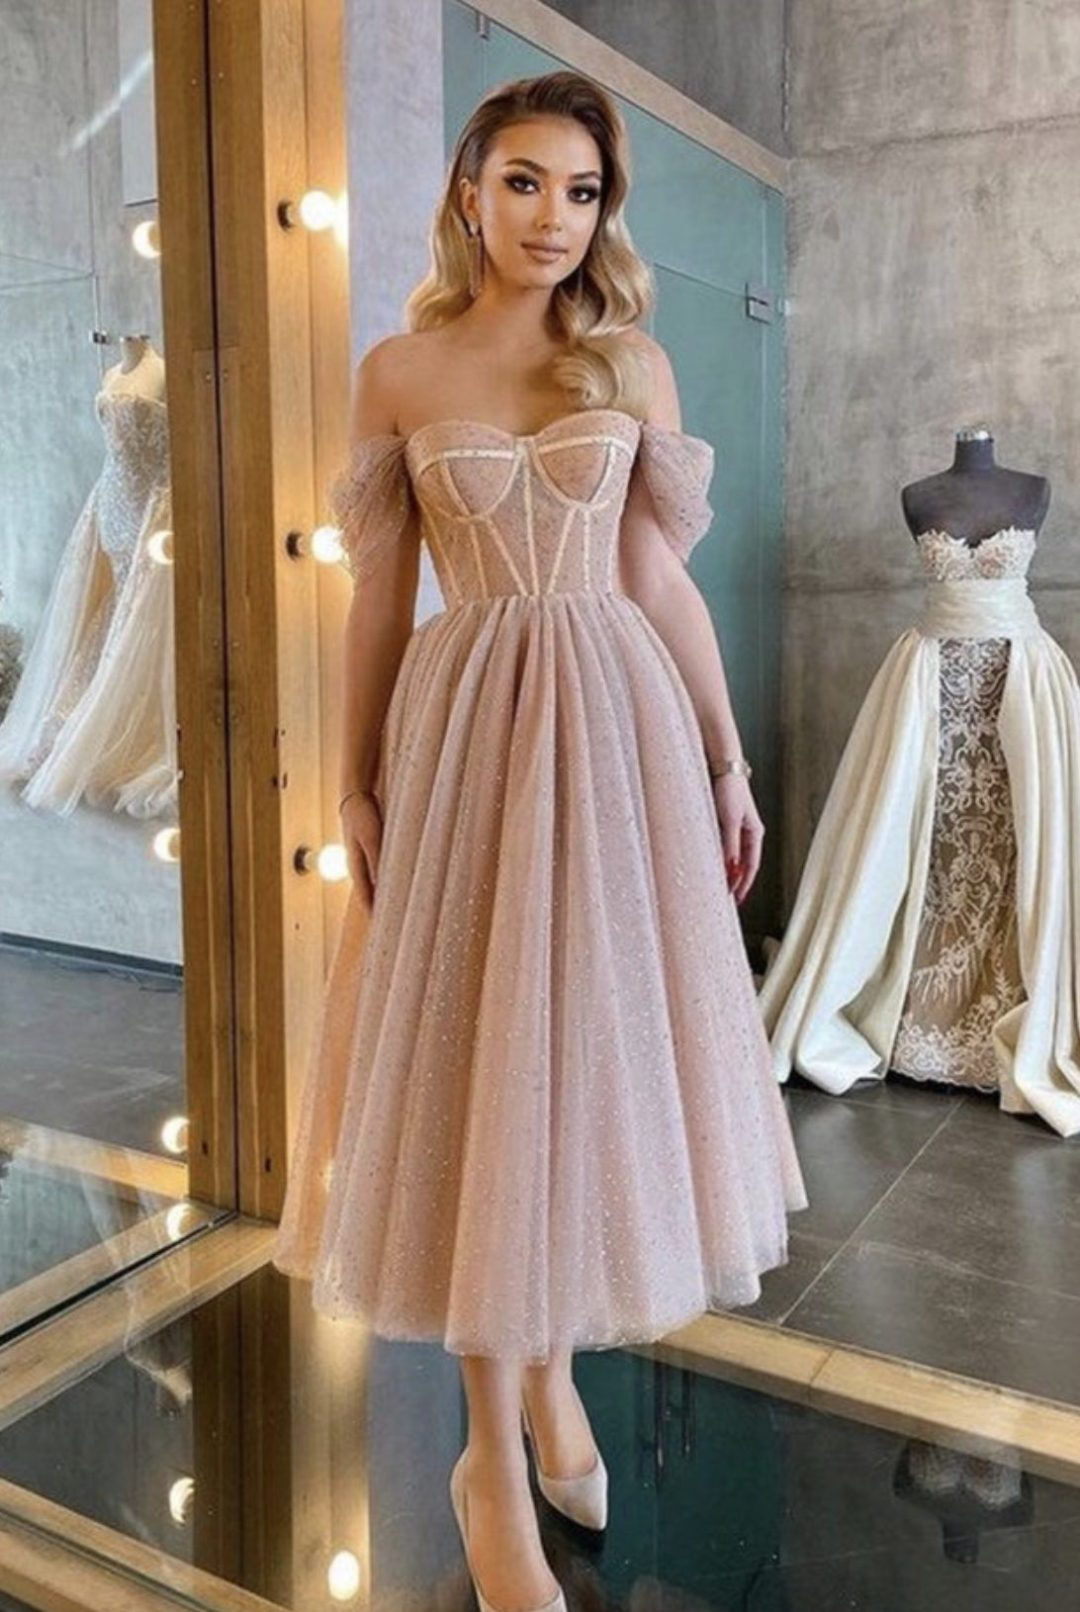 Blush pink corset dress with tulle - perfect as a pink ball gown